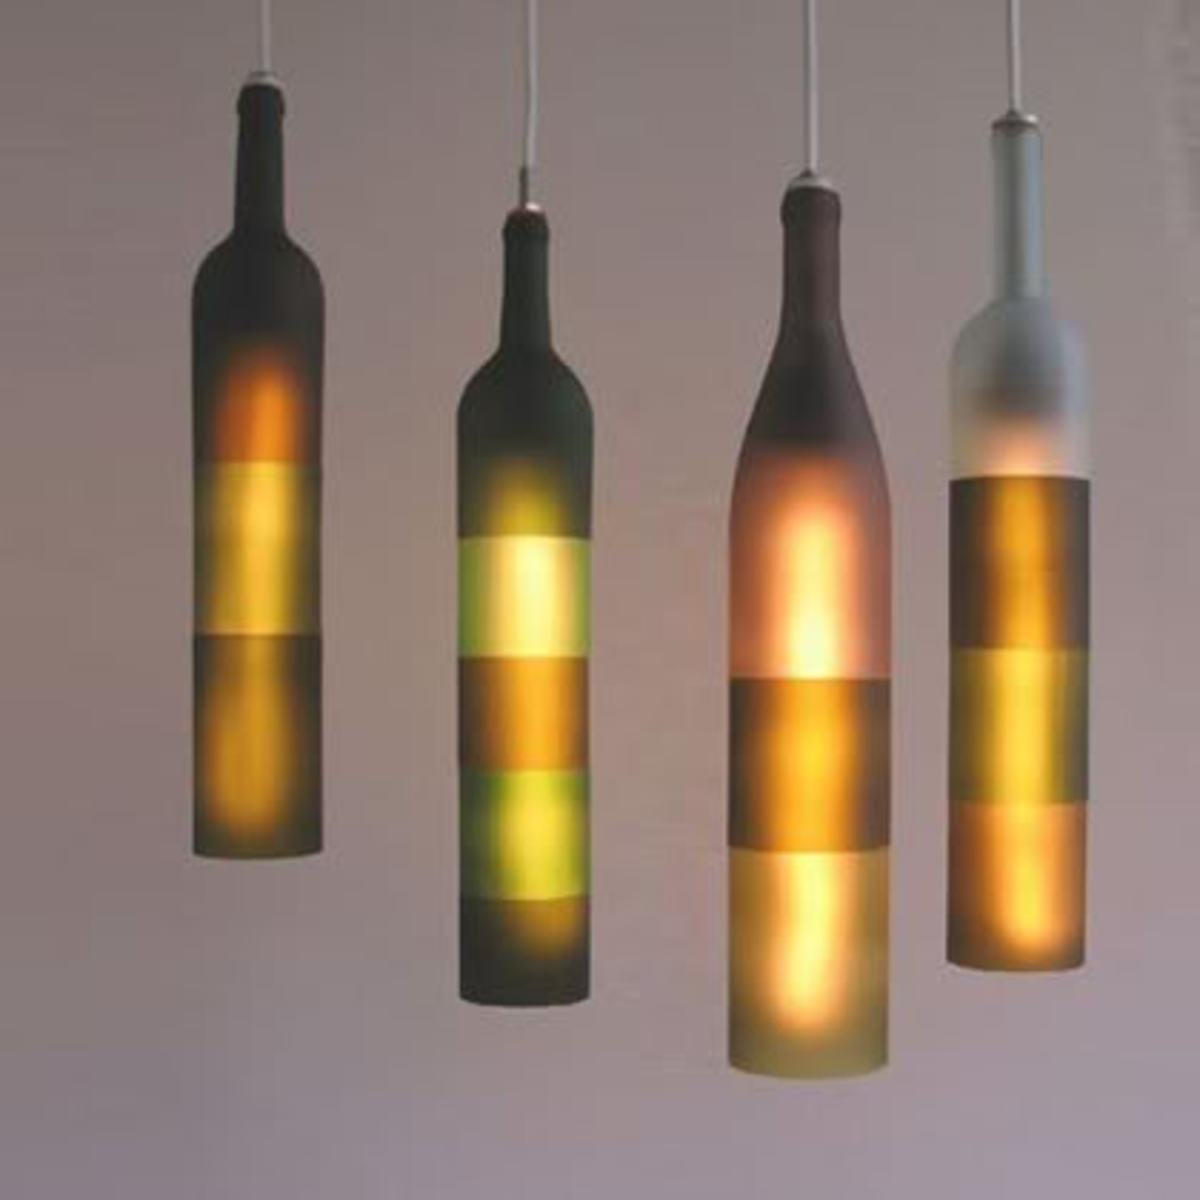 Diy Pendant Lighting Modern Bottle Pendant Lights Dengarden Diy Pendant Lights Dengarden